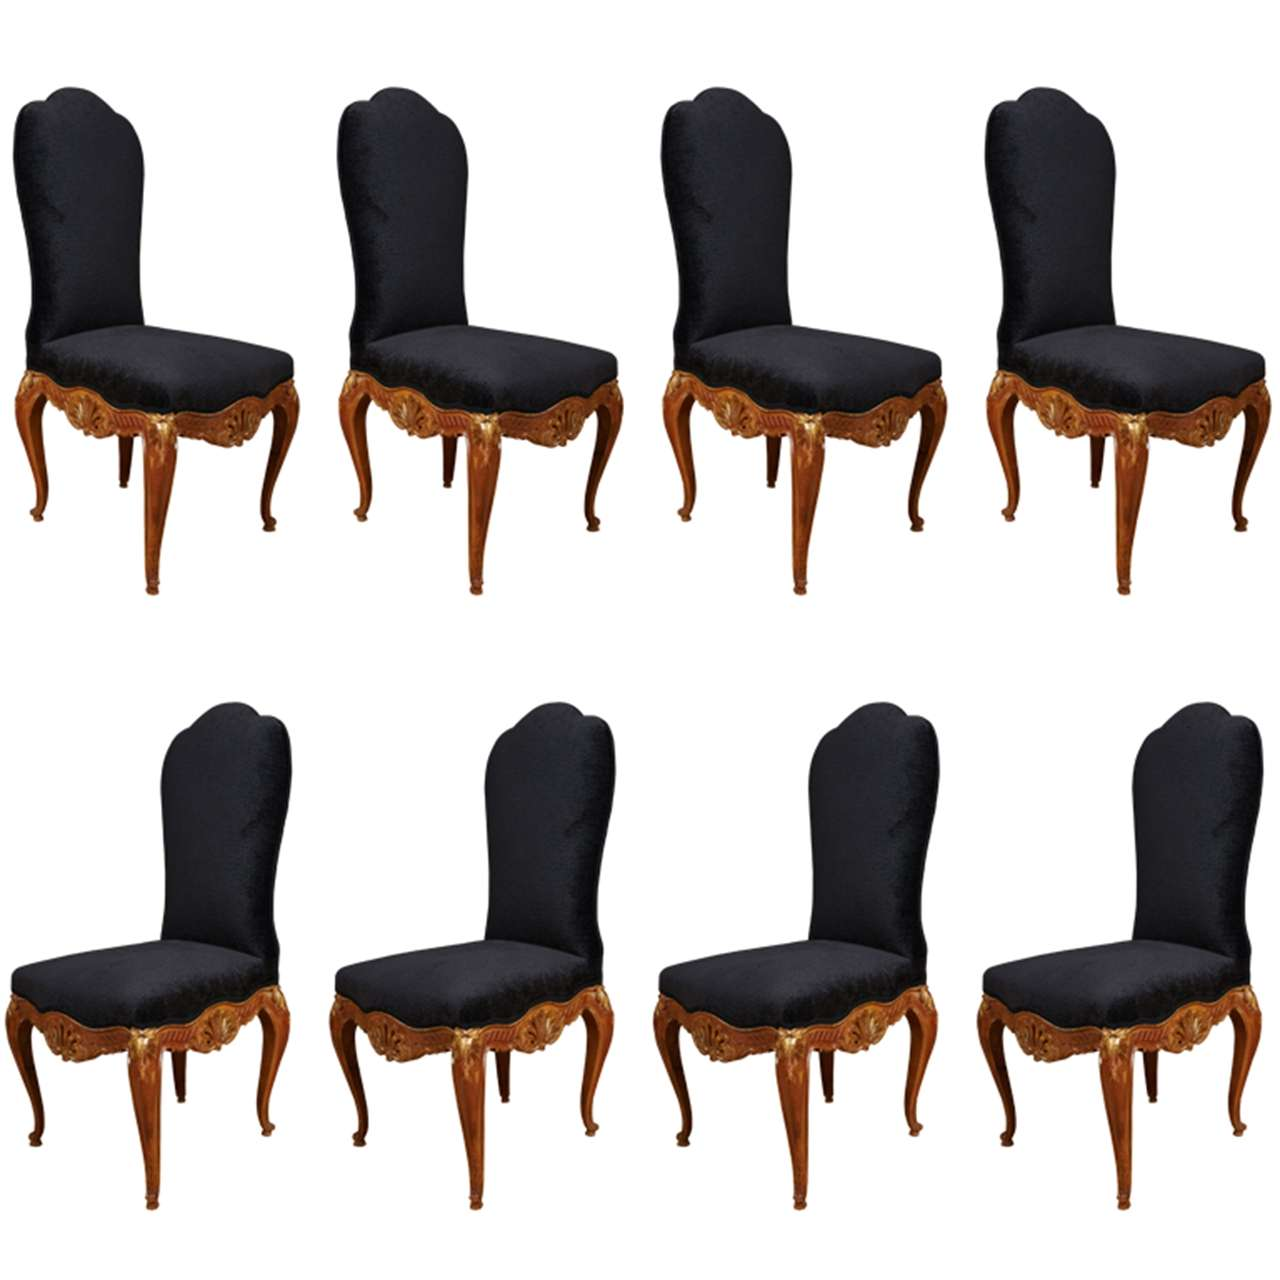 Rare set of 8 high back dining chairs by Jansen